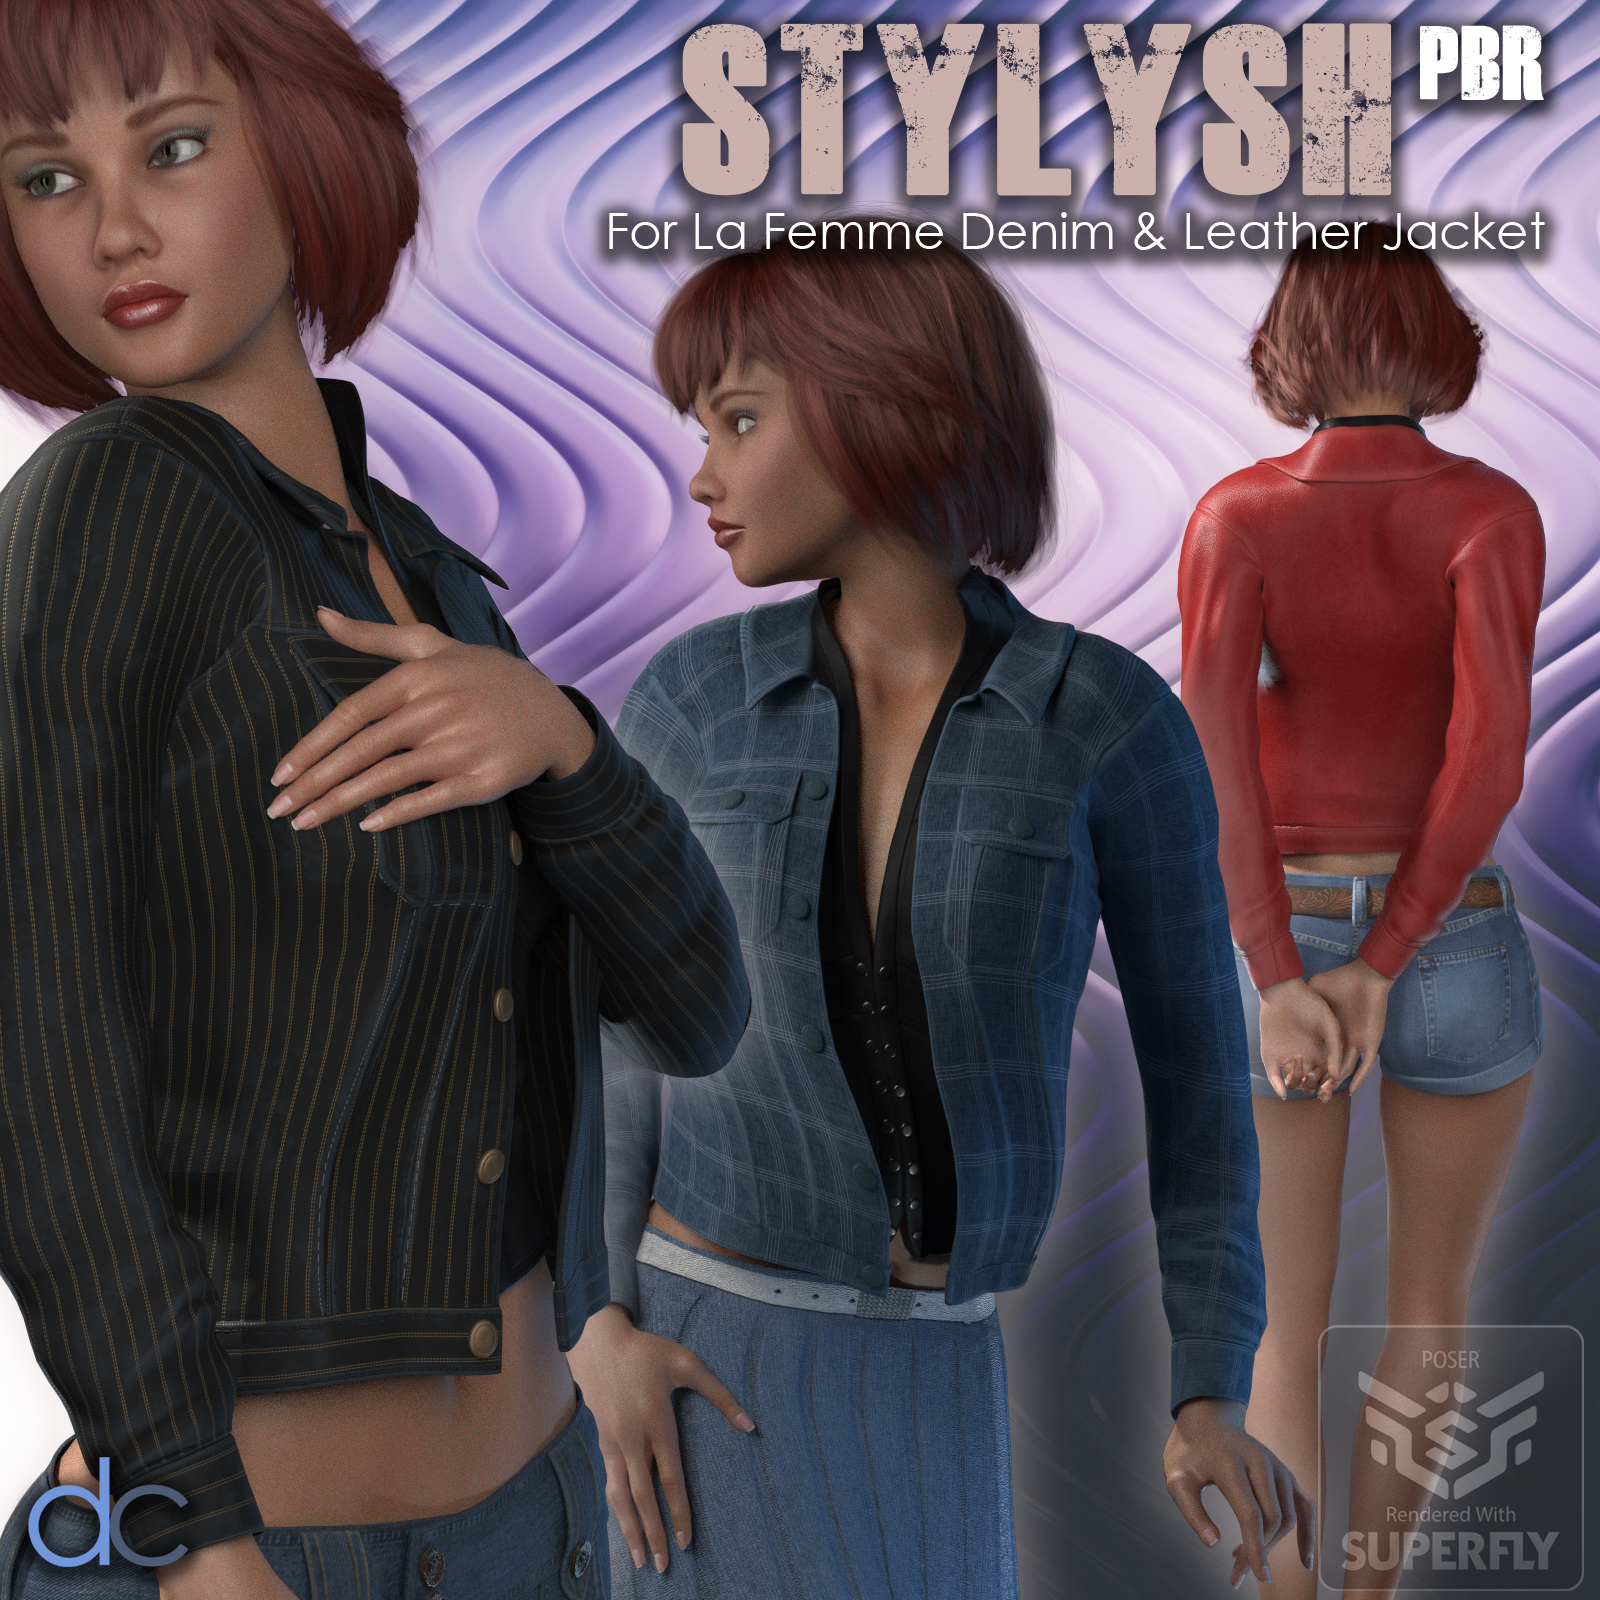 Stylish PBR for La Femme Denim and Leather Jacket by Deecey